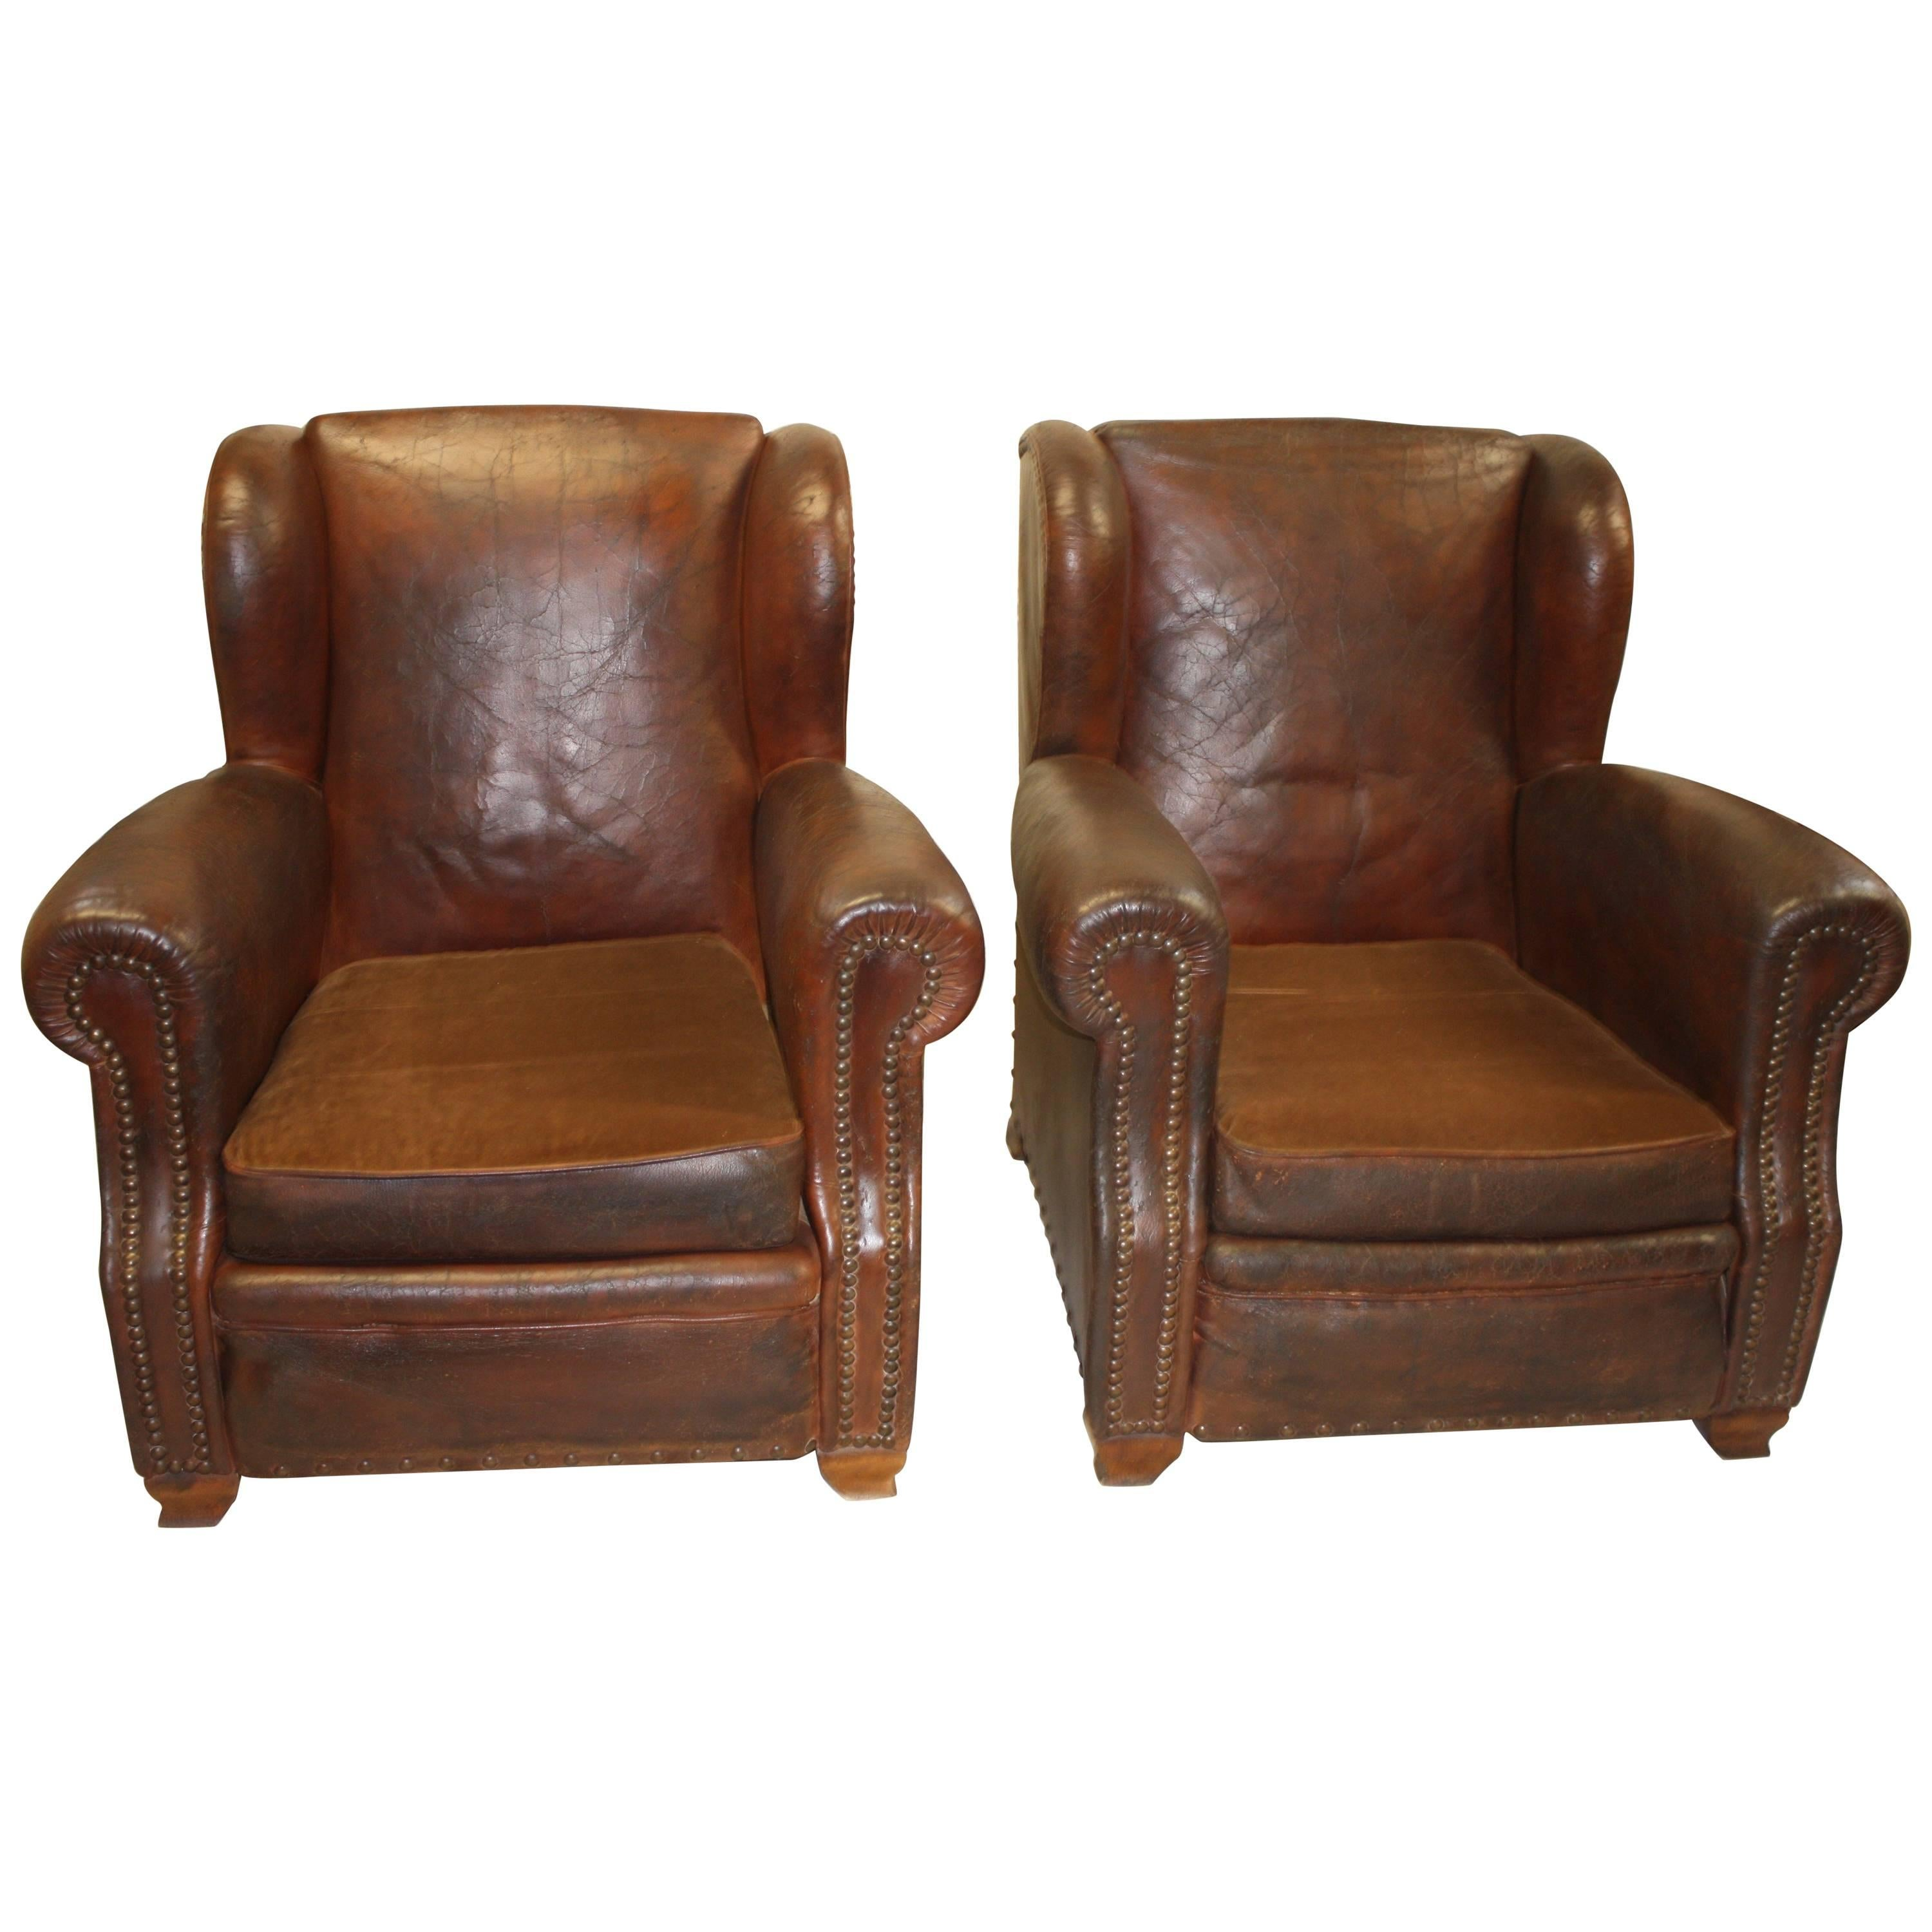 Merveilleux Magnificent Pair Of 19th Century French Club Chairs